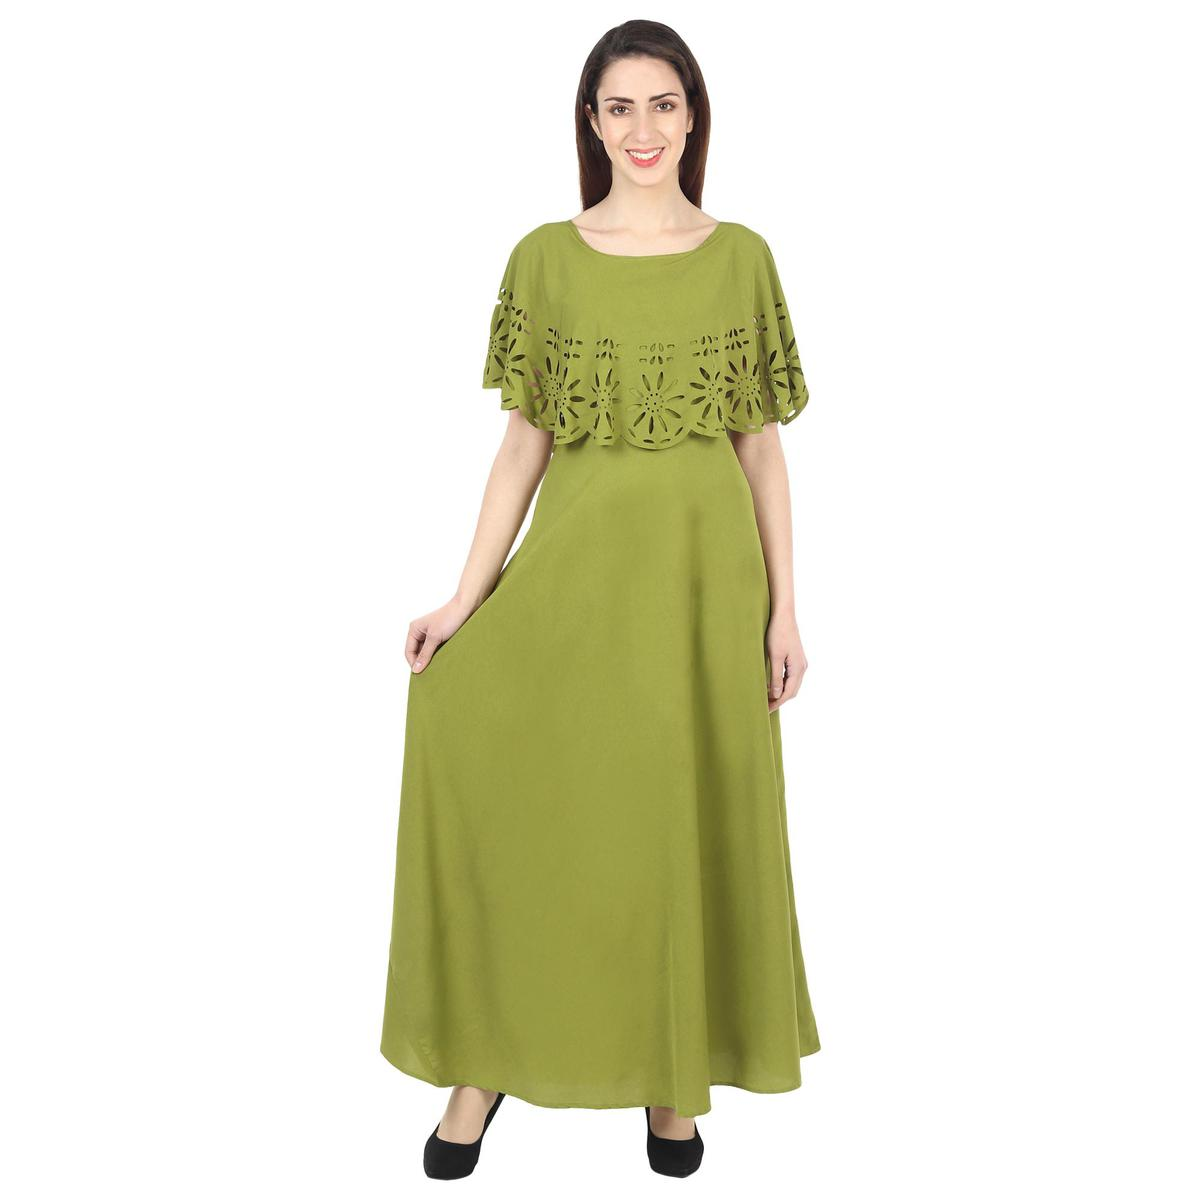 OMADAM - Olive Green Colored Casual Wear Floral Crepe Cape Gown